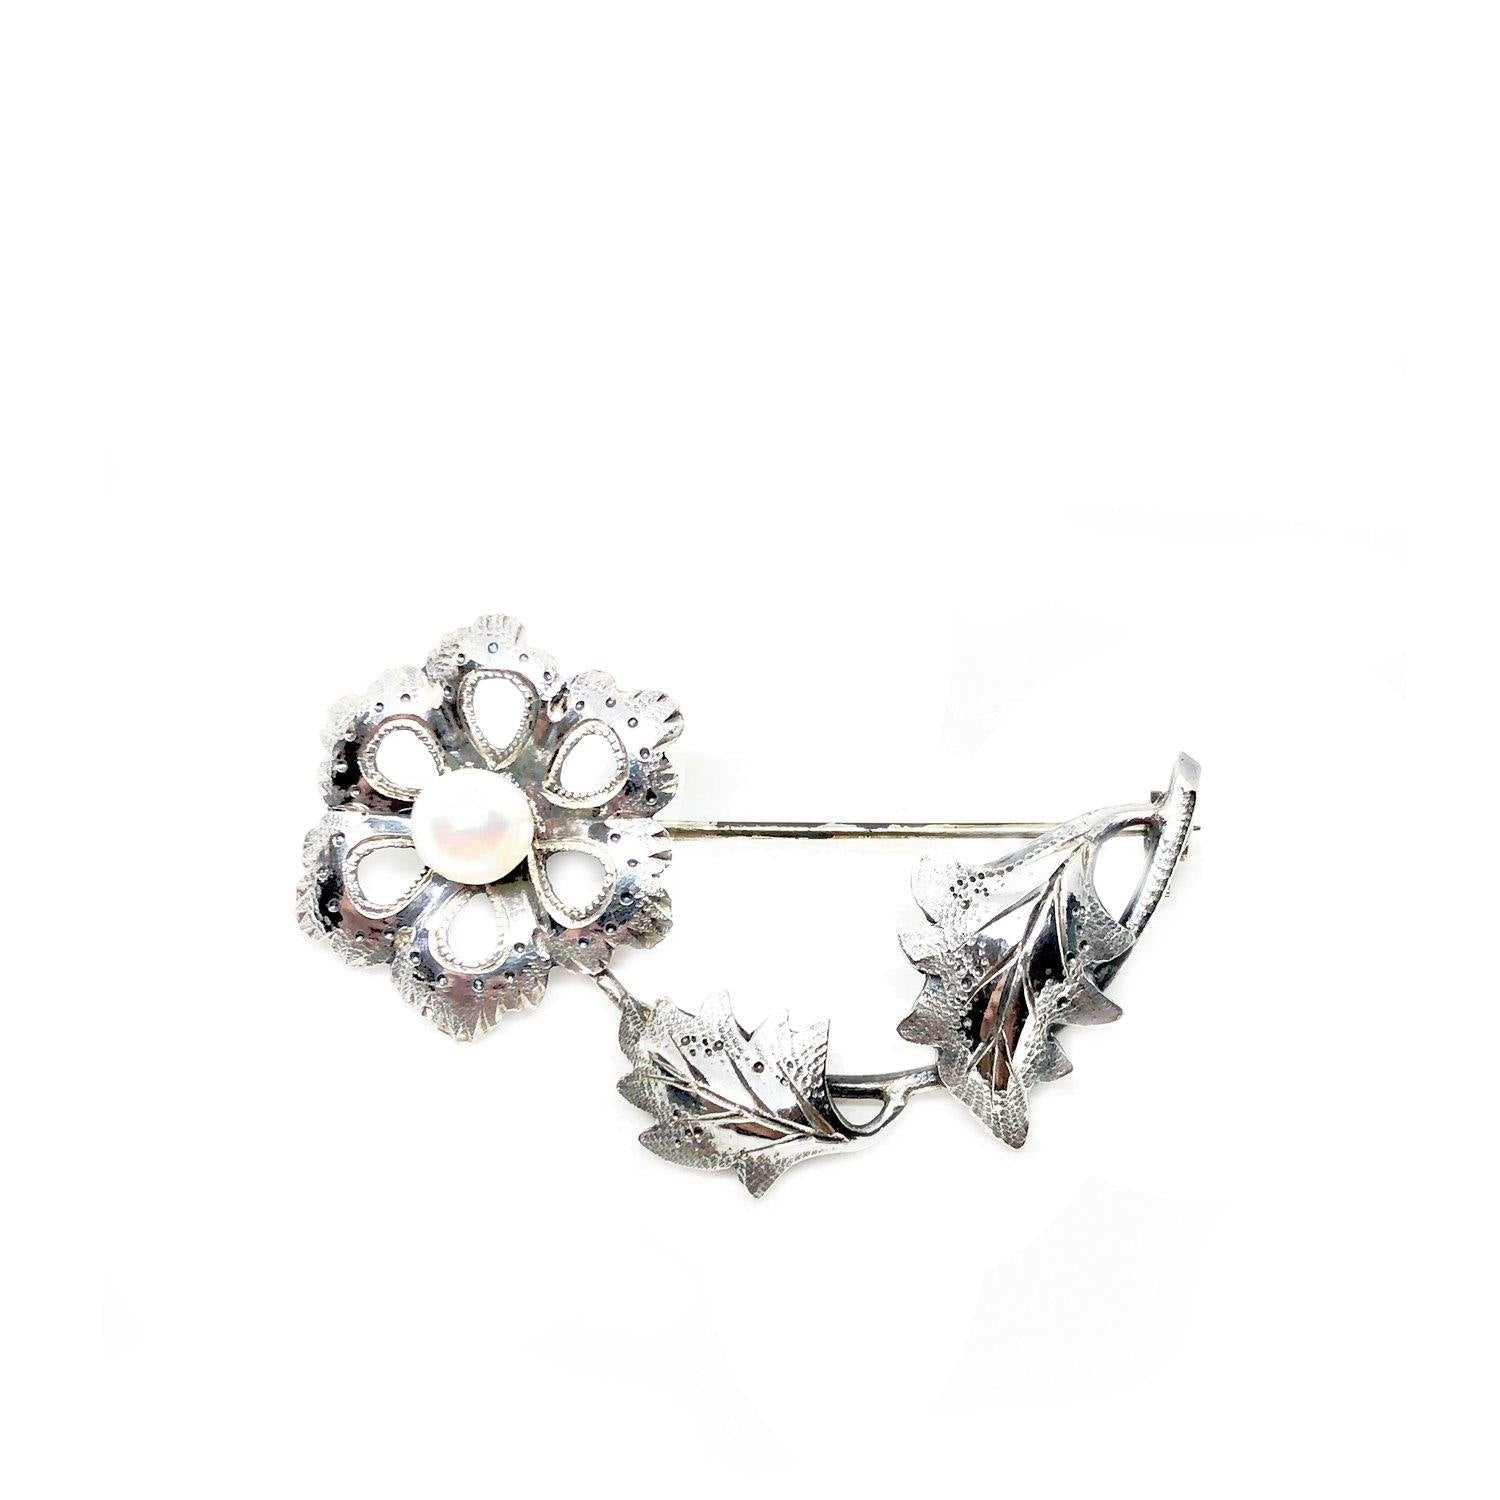 Flower Japanese Akoya Cultured Saltwater Pearl Brooch- Sterling Silver